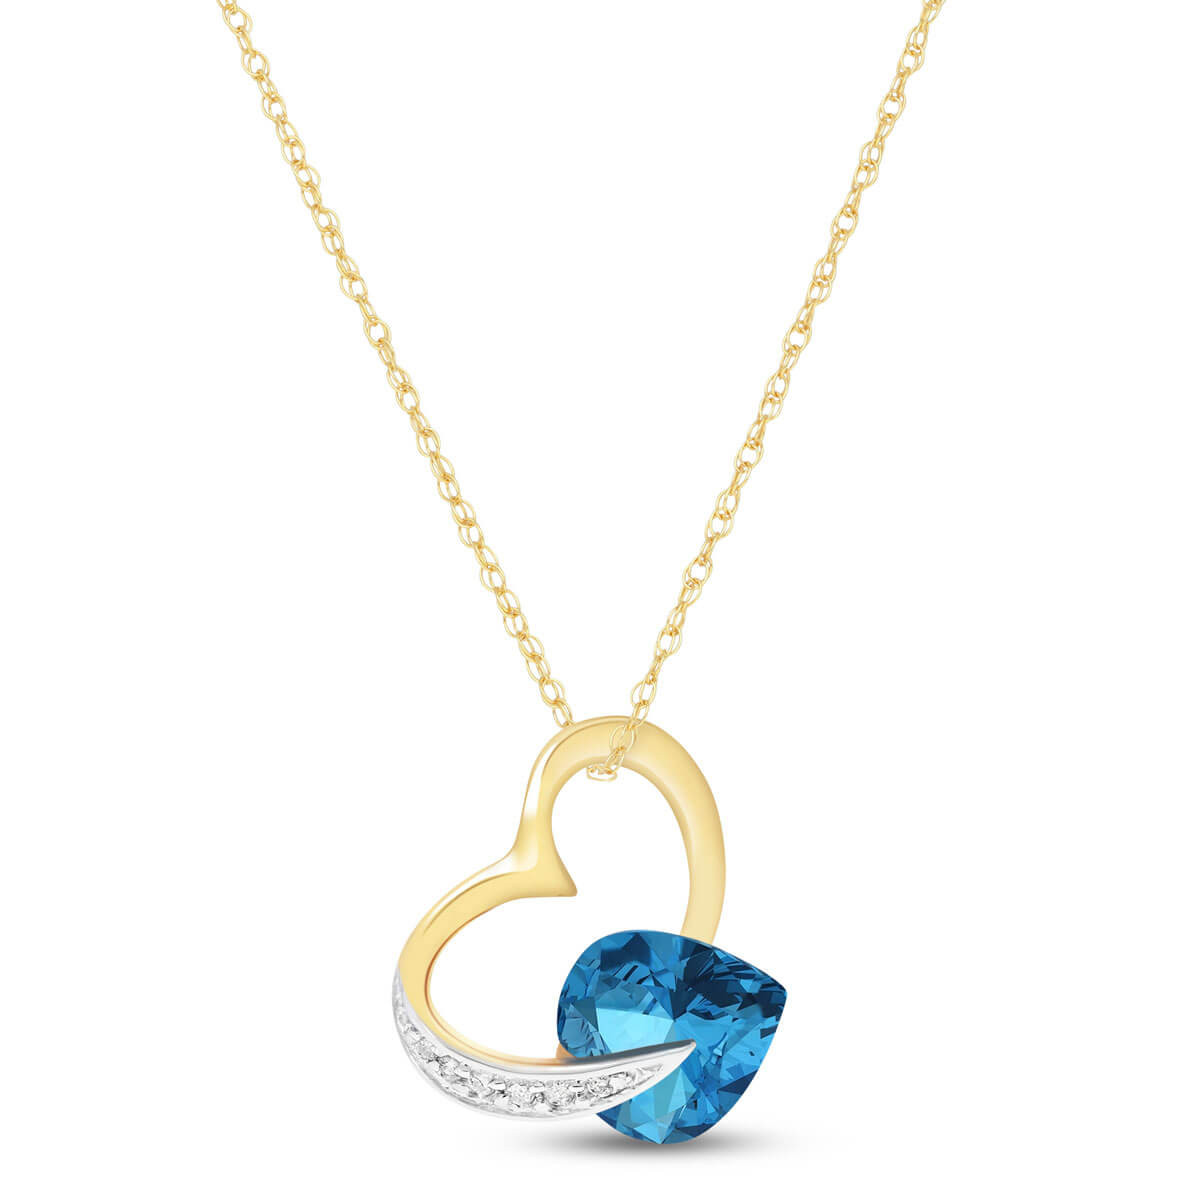 Blue Topaz & Diamond Heart Pendant Necklace in 9ct Gold